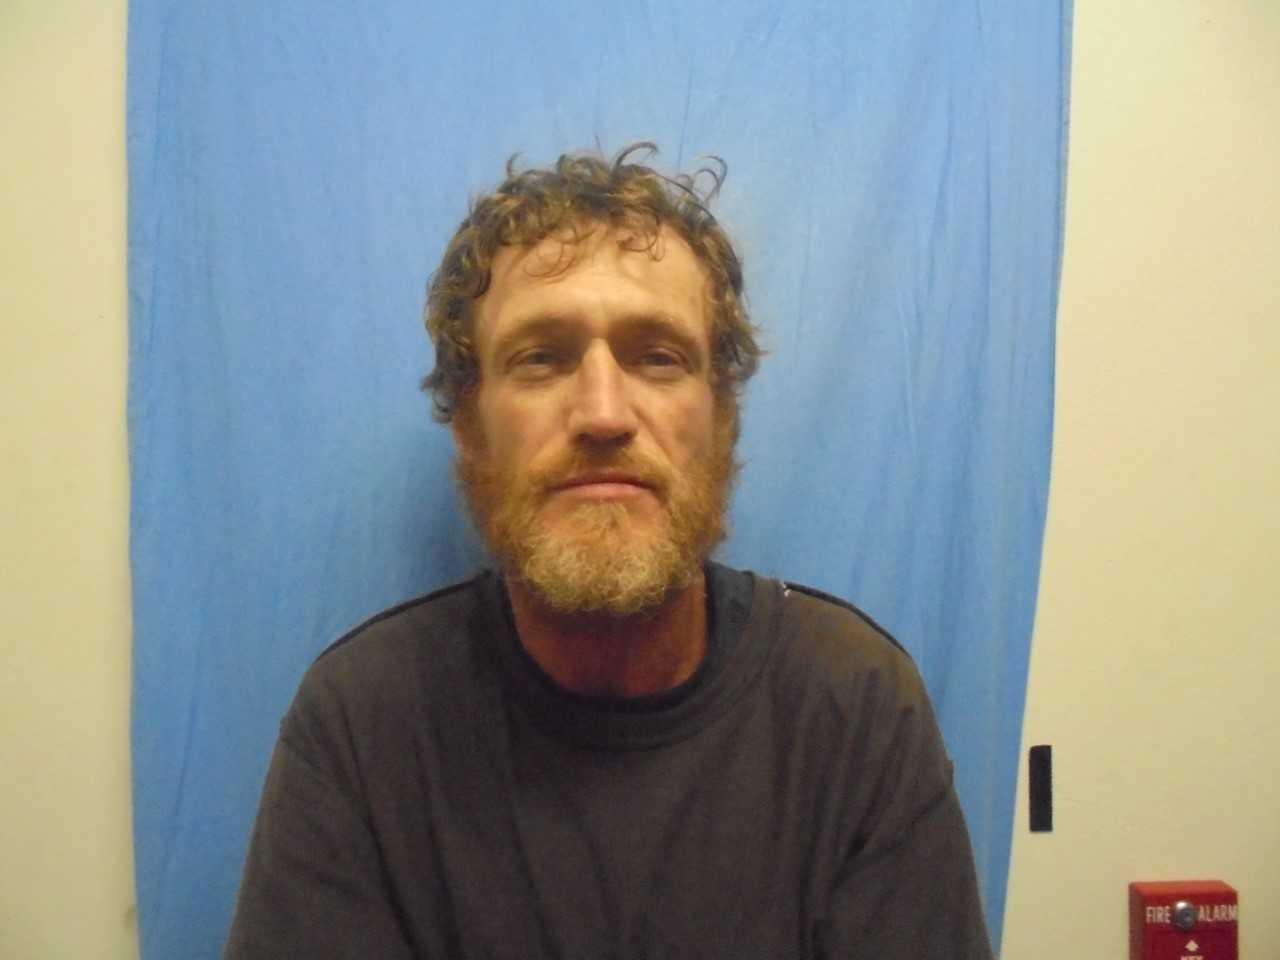 Clinton man accused of building improvised explosive device arrested in Henry County